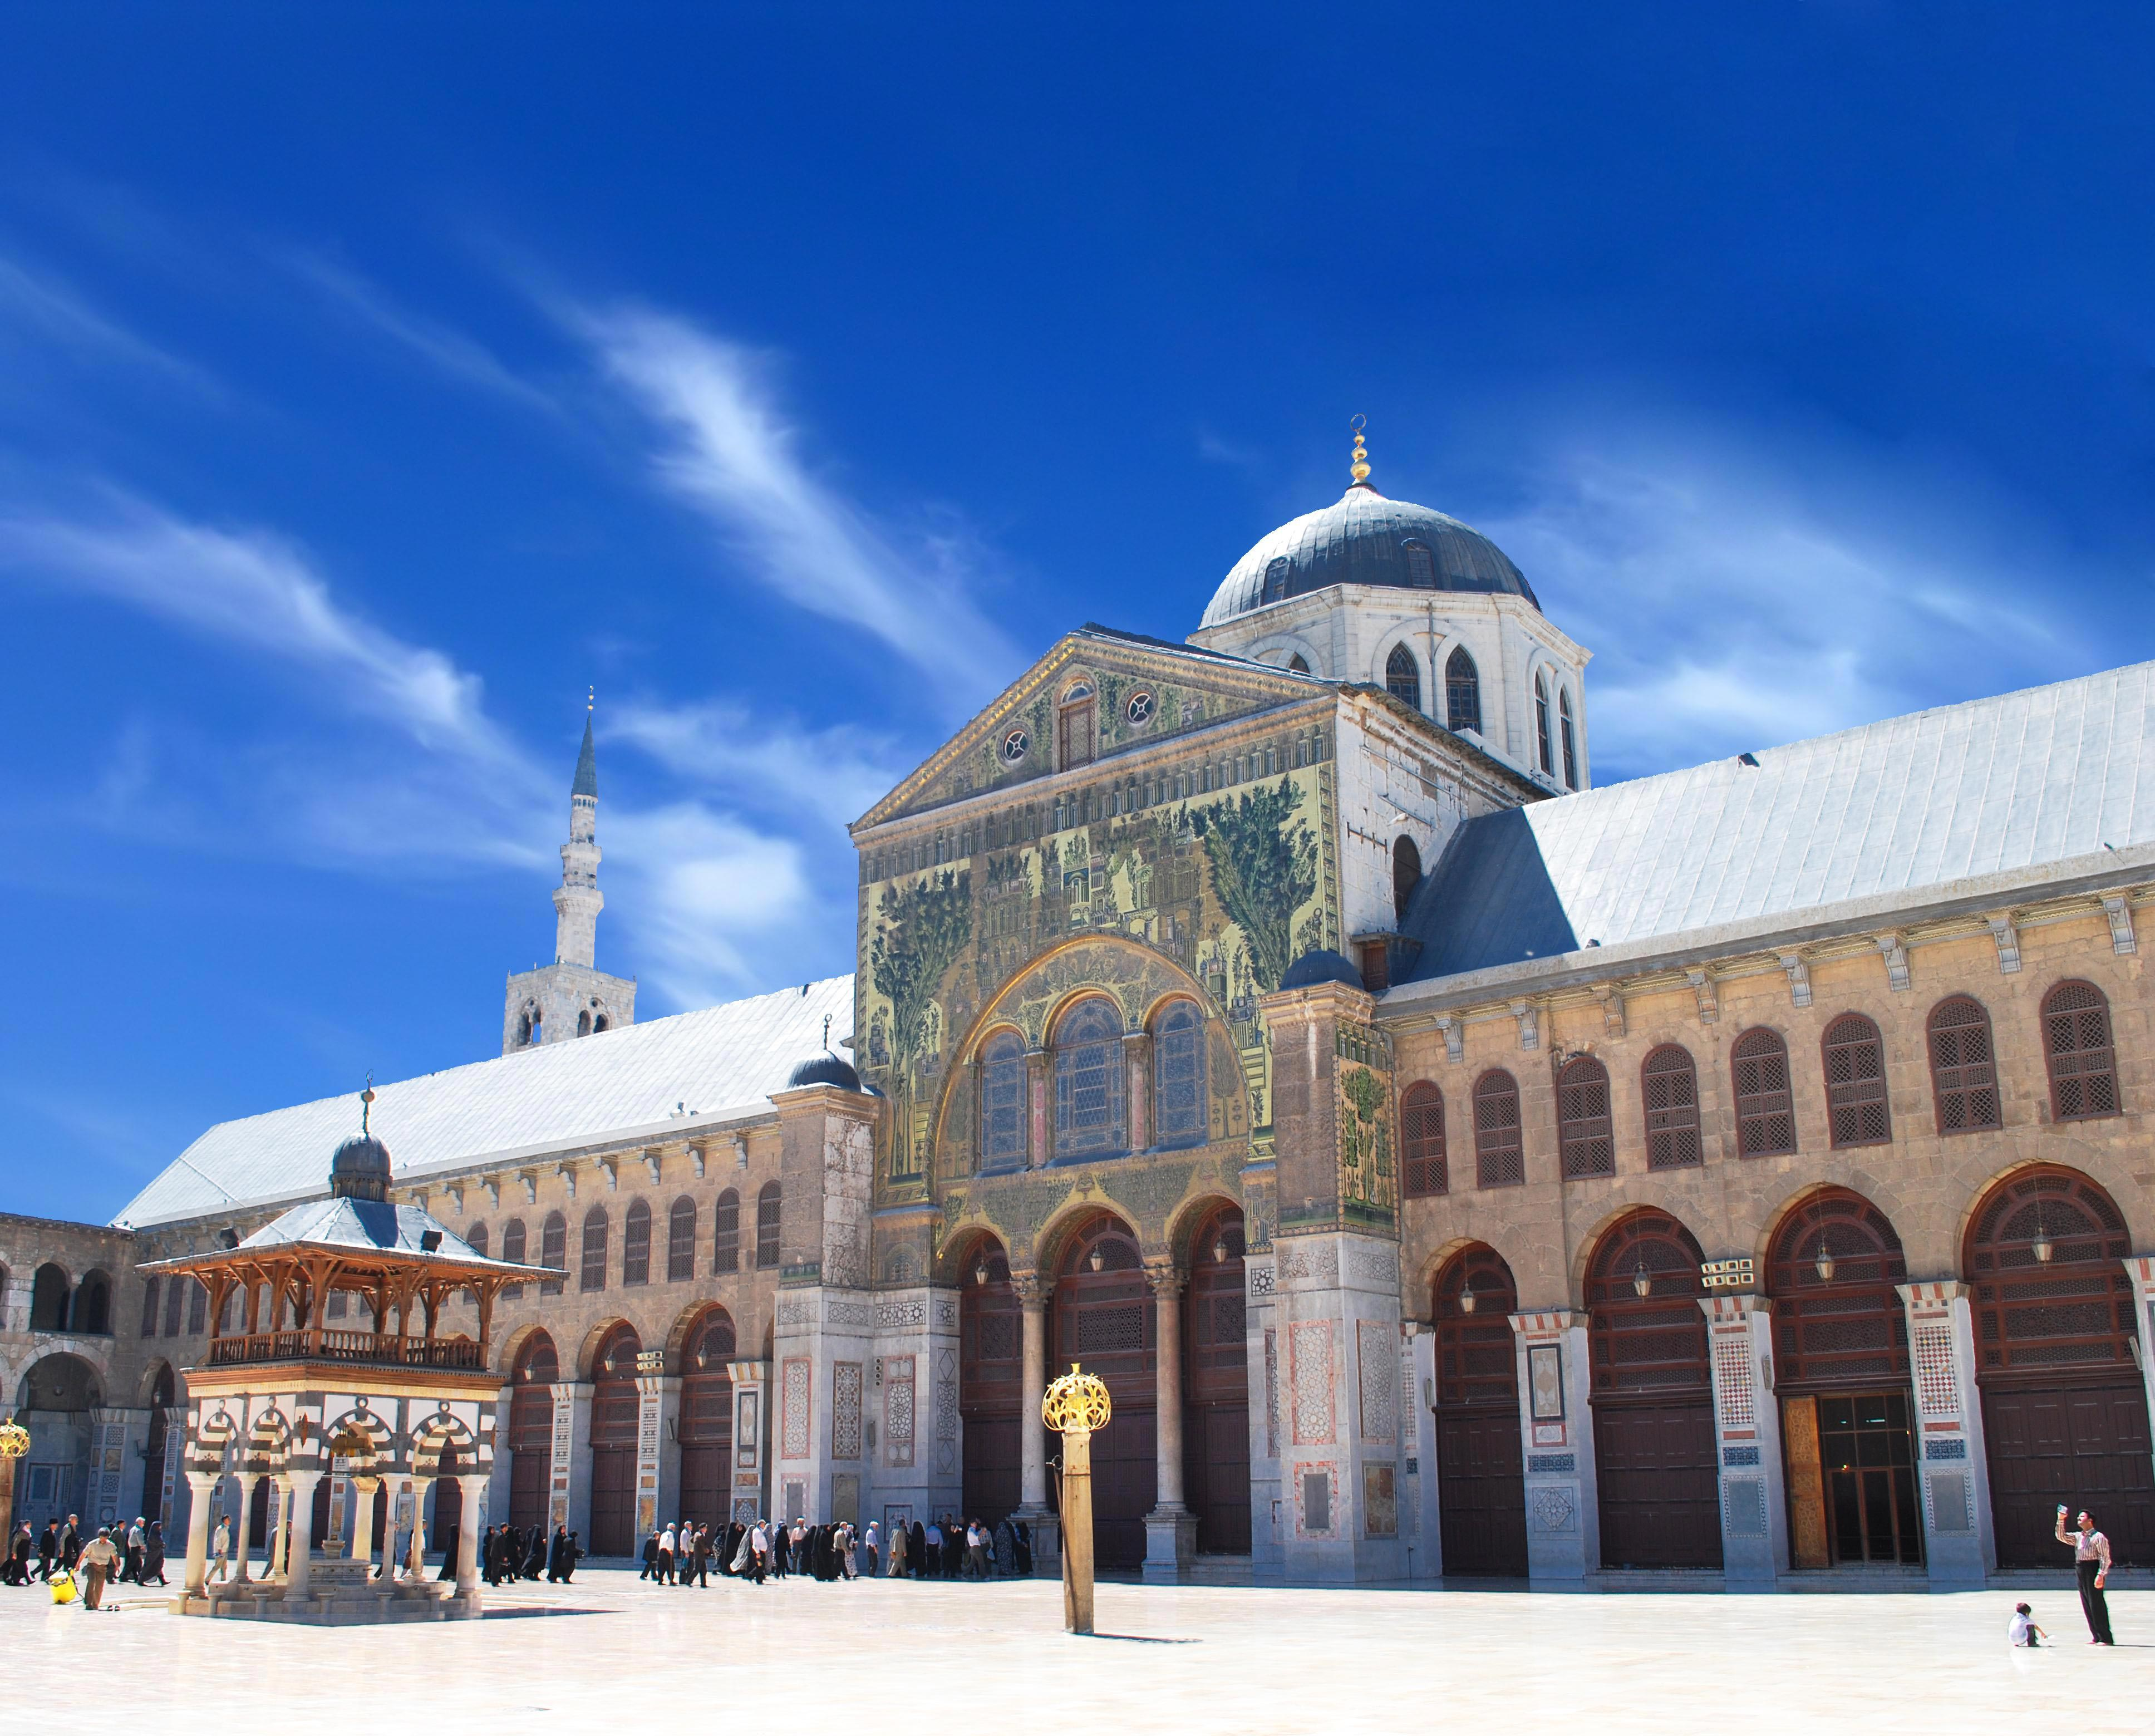 Umayyad Mosque (Grand Mosque of Damascus) at Syria